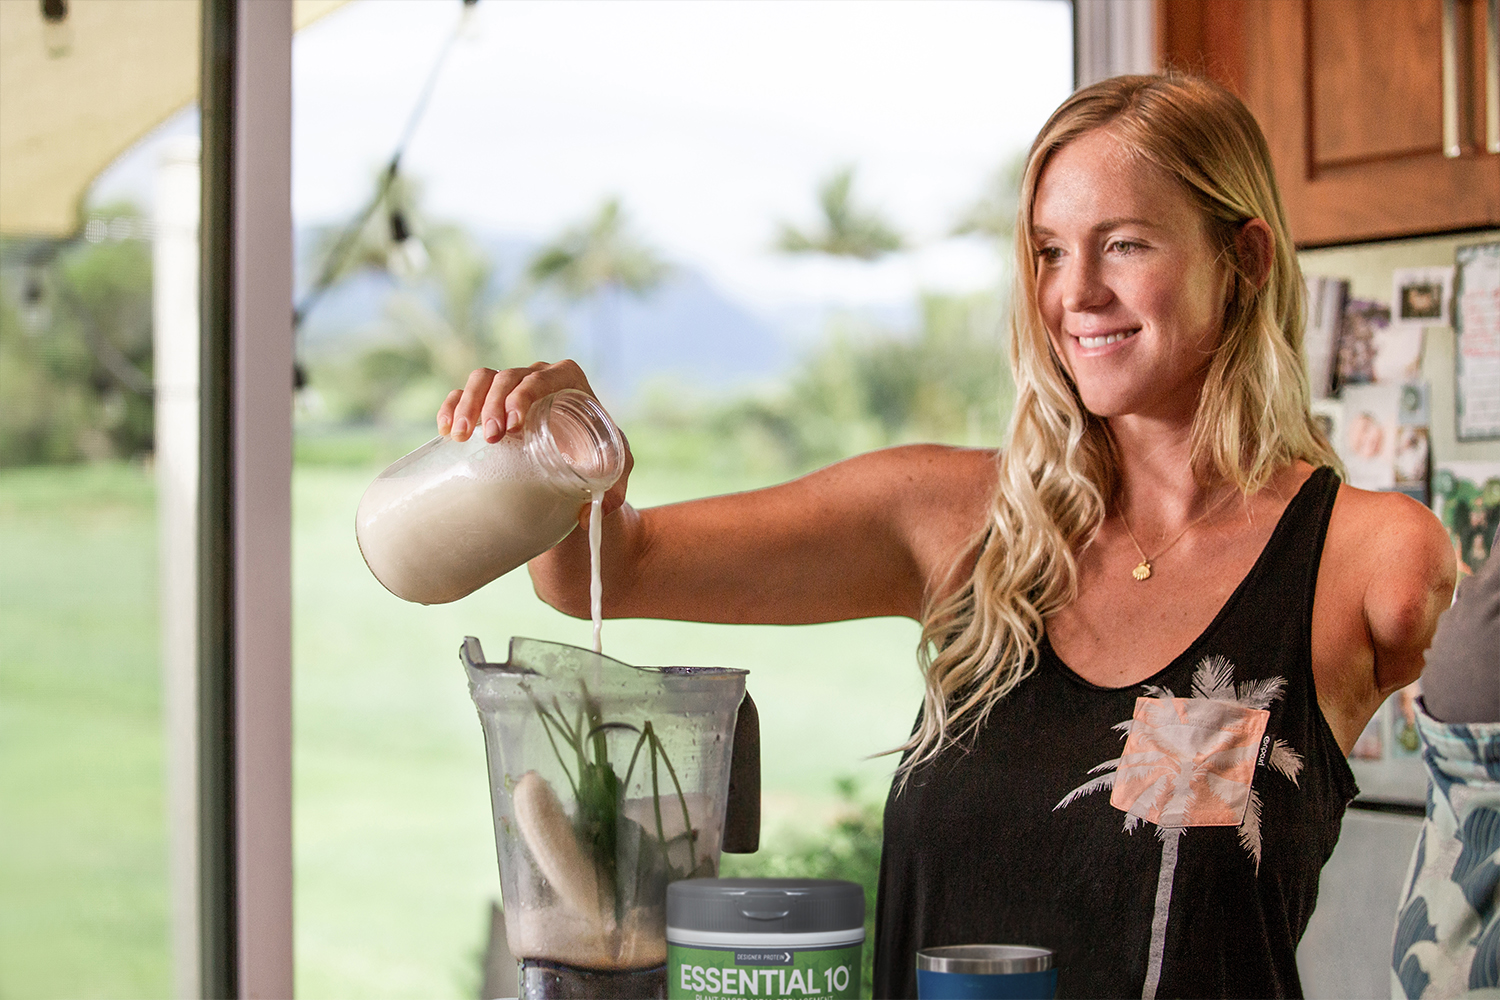 Bethany Hamilton, Top Ranked Surfer and Influencer, Is Designed to be Fearless